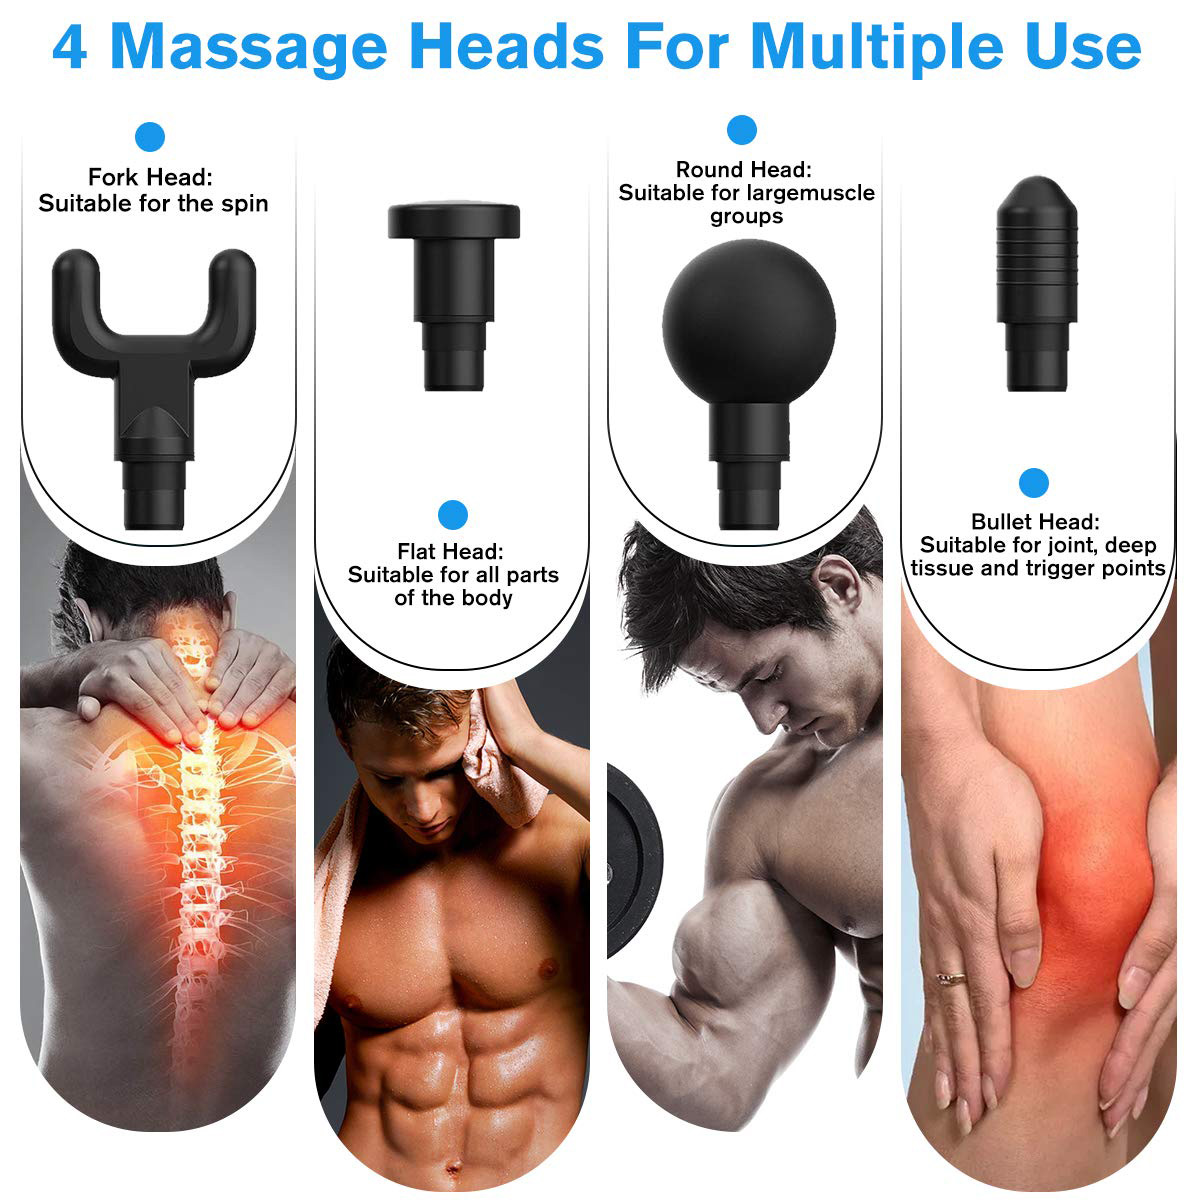 Electronic Therapy Muscle Massage Gun Machine For Body Relaxation Pain Relief